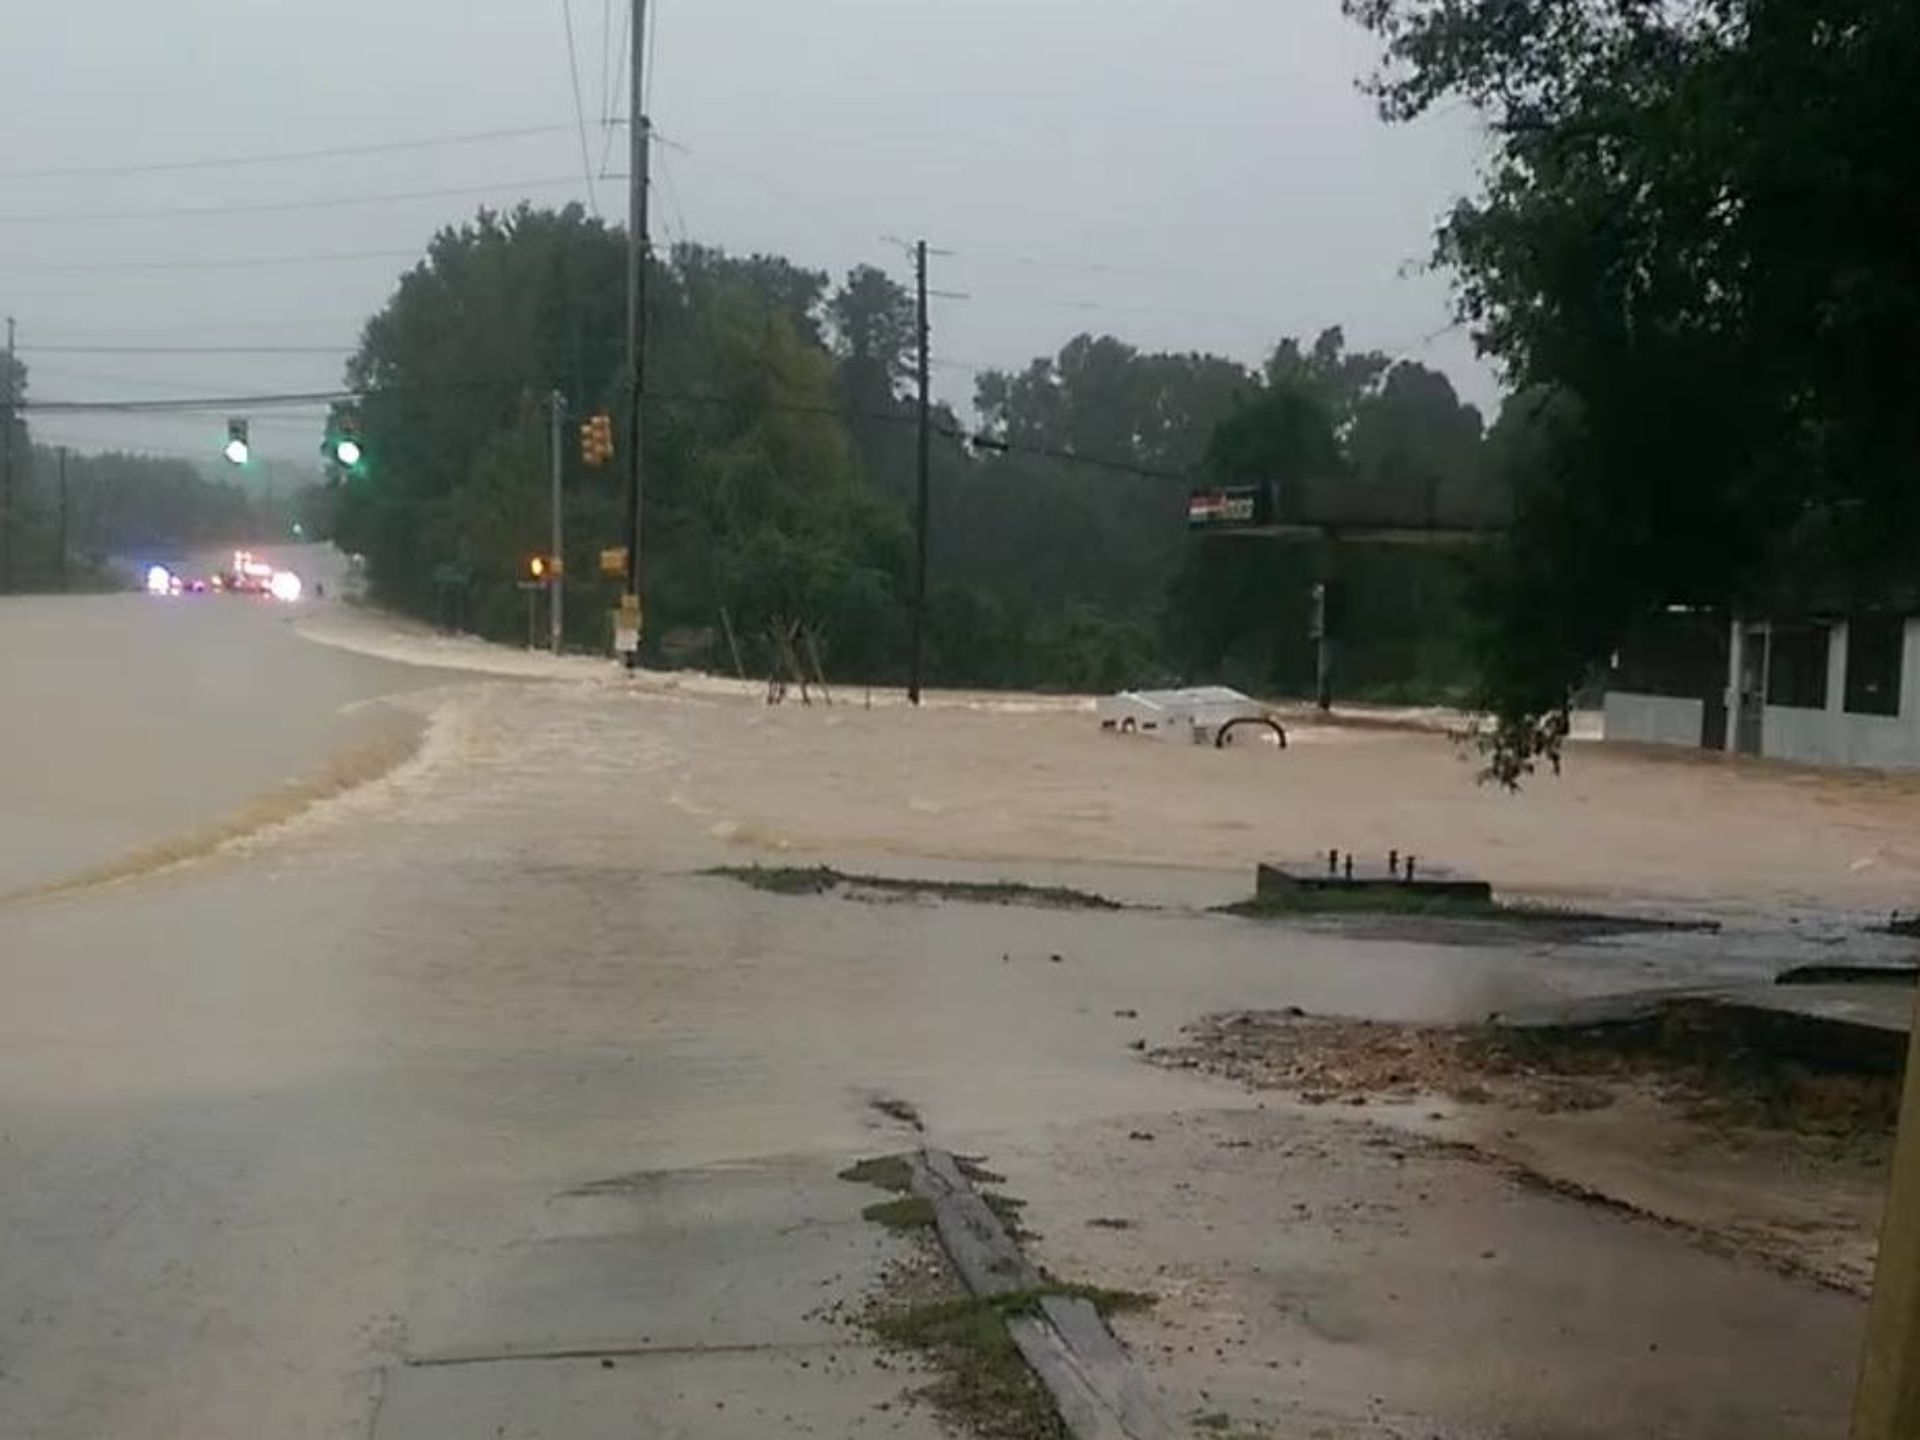 This is Monticello Rd and I-20. The flooding water